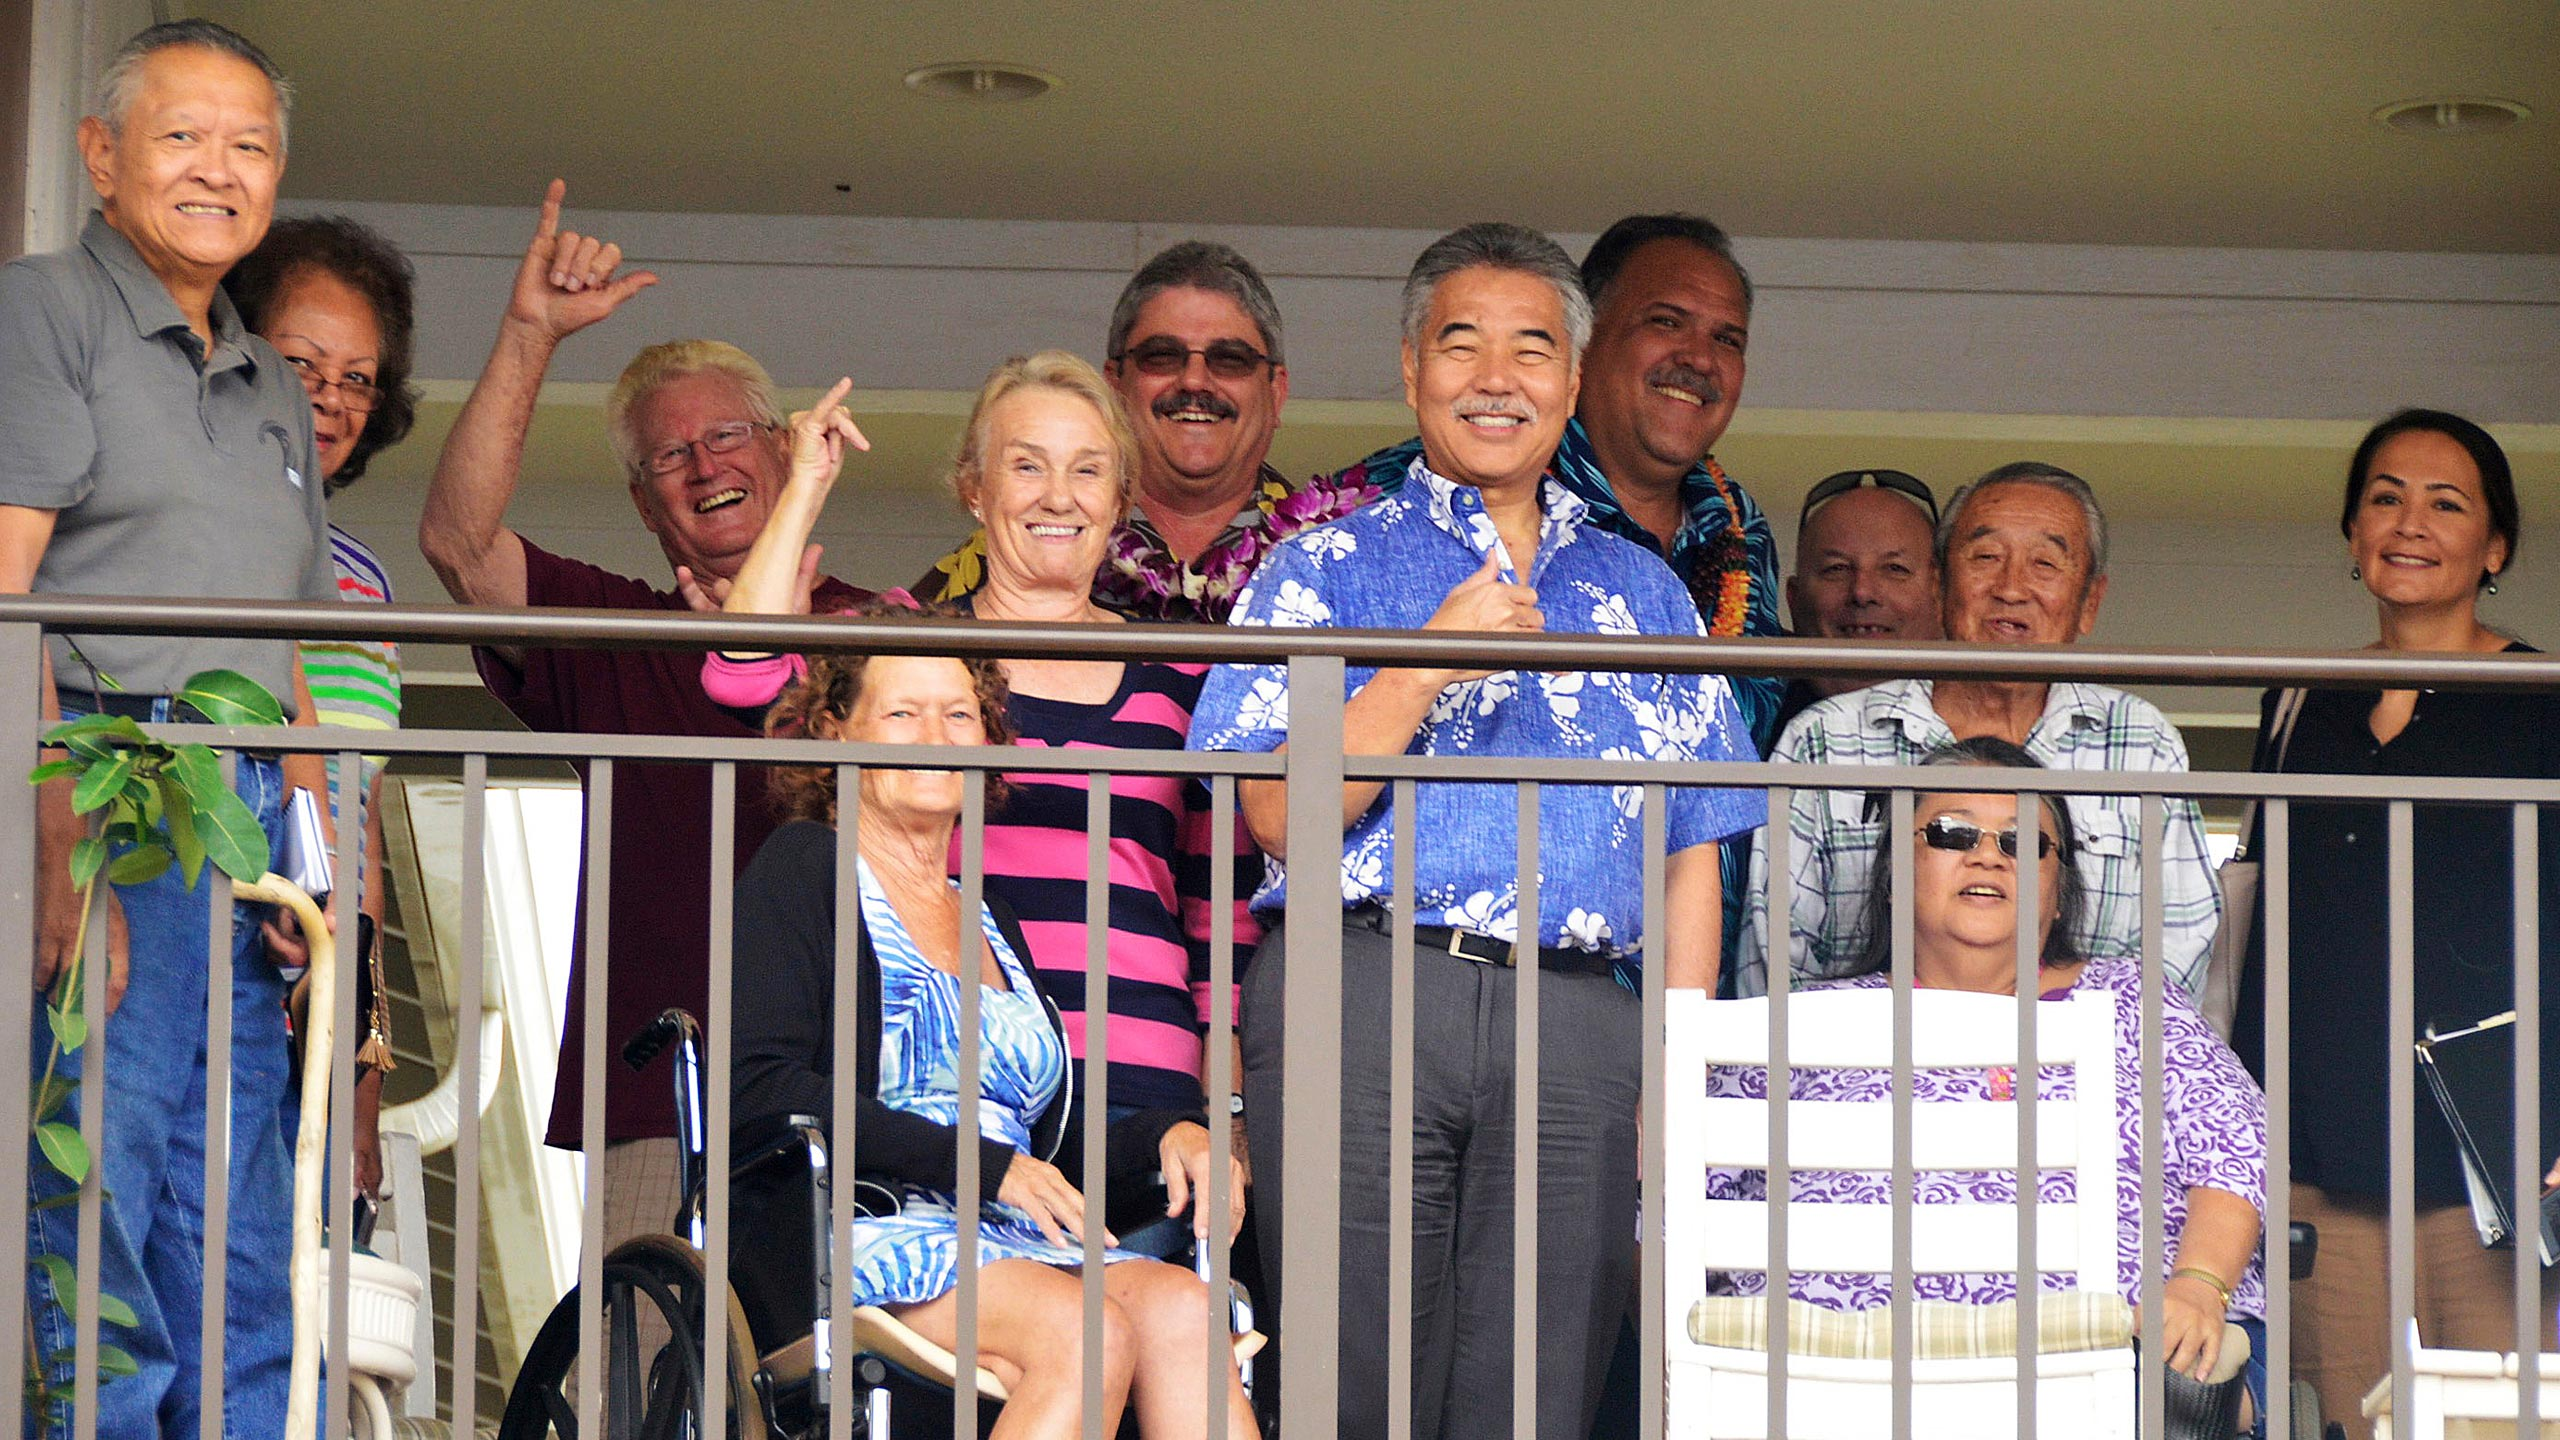 Governor Ige and a group of people